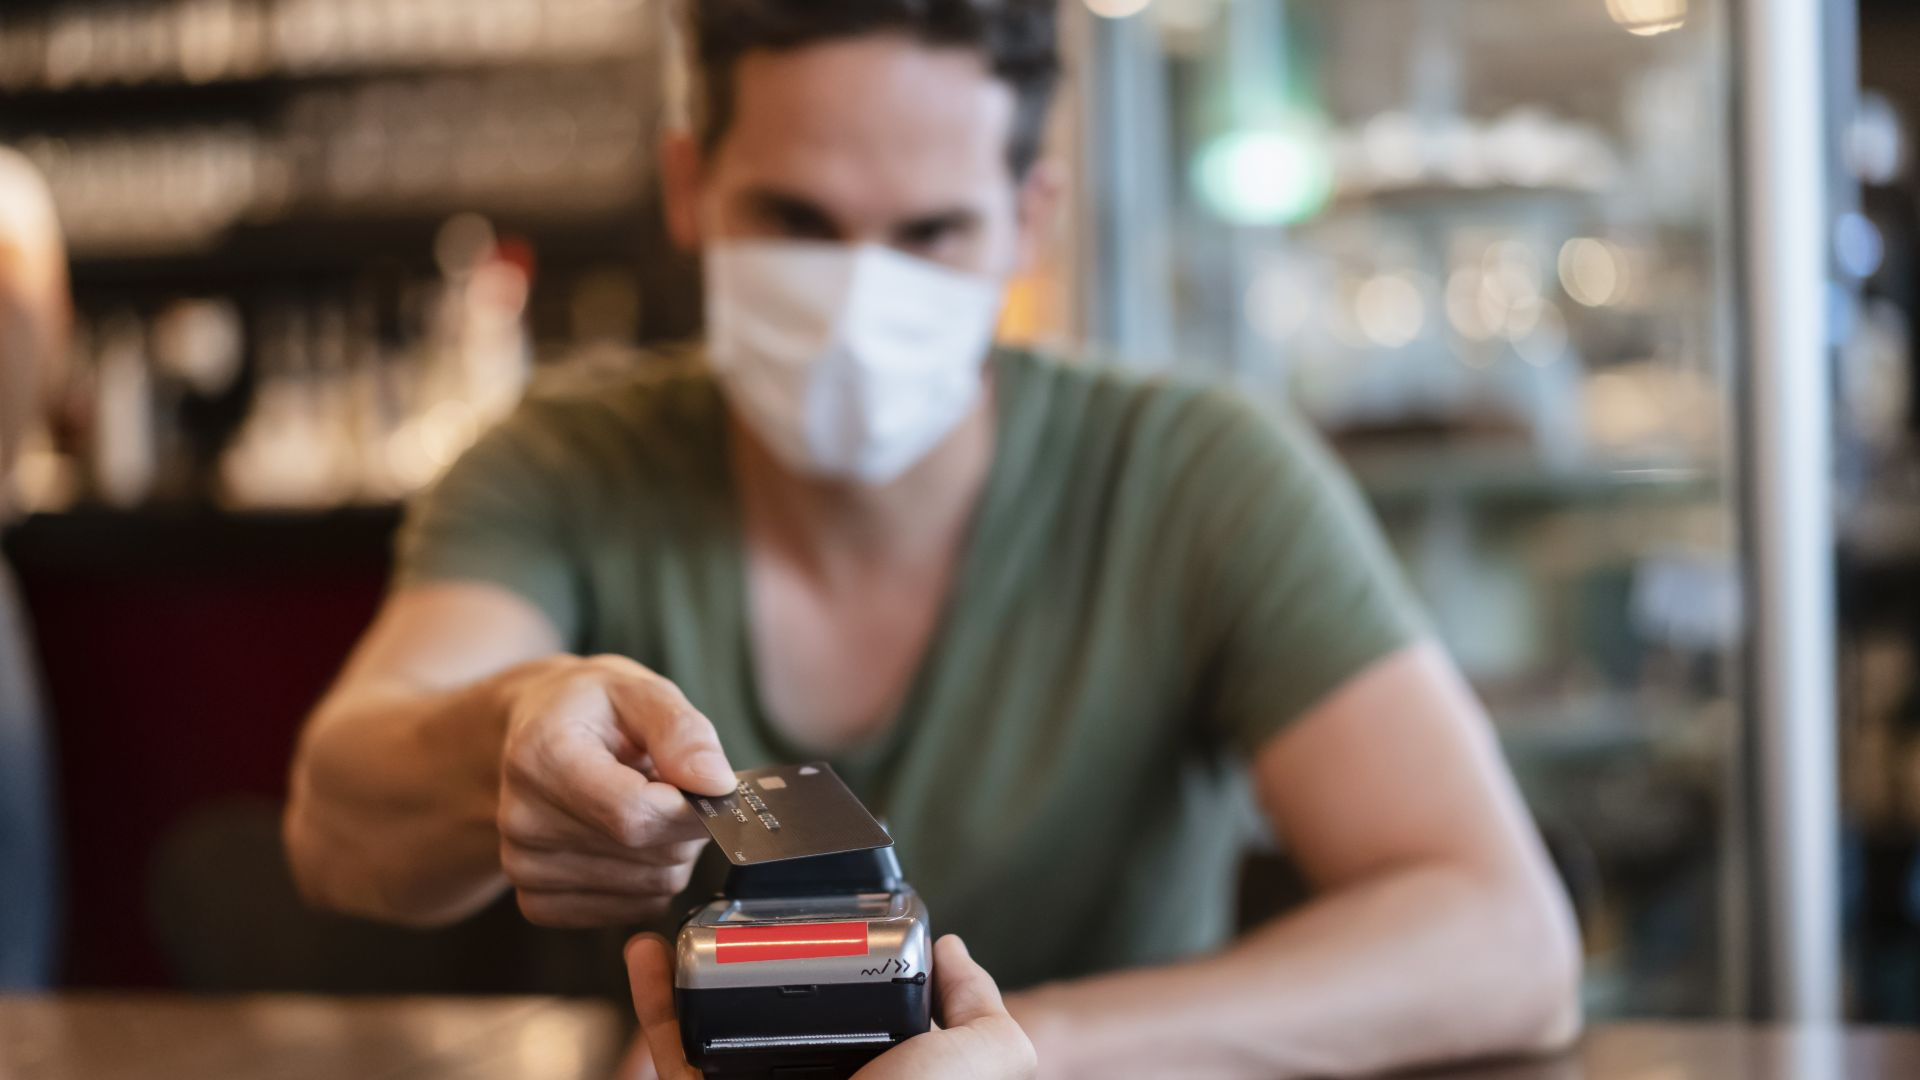 Man in protective mask paying with credit card in restaurant